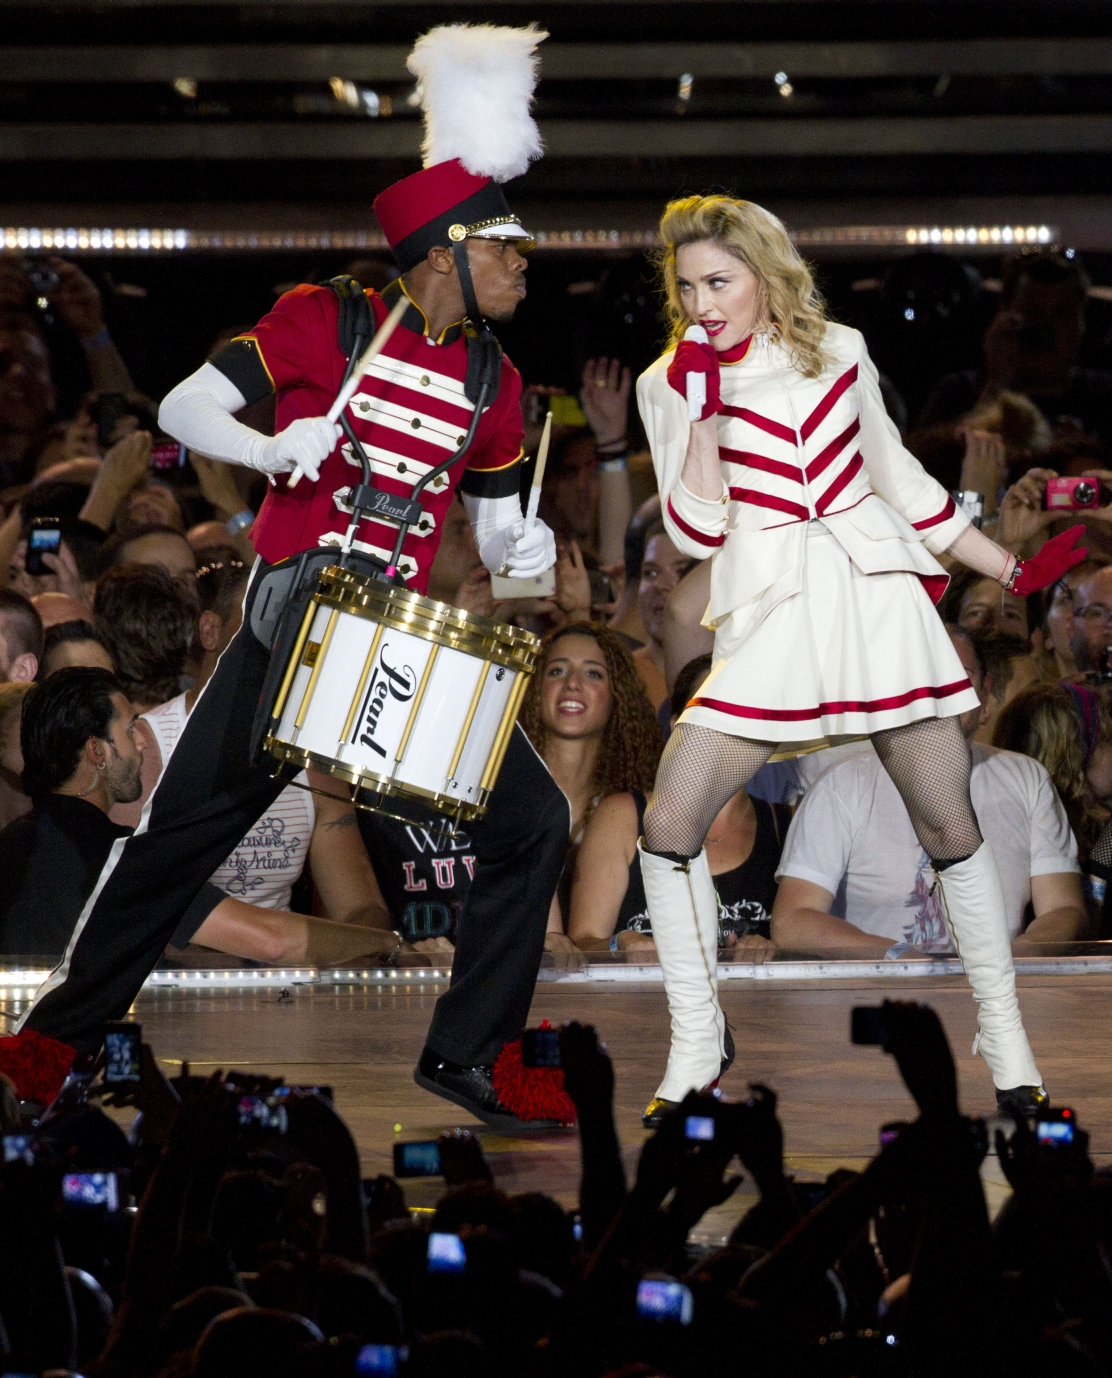 20120531-pictures-madonna-mdna-tour-tel-aviv-opening-03